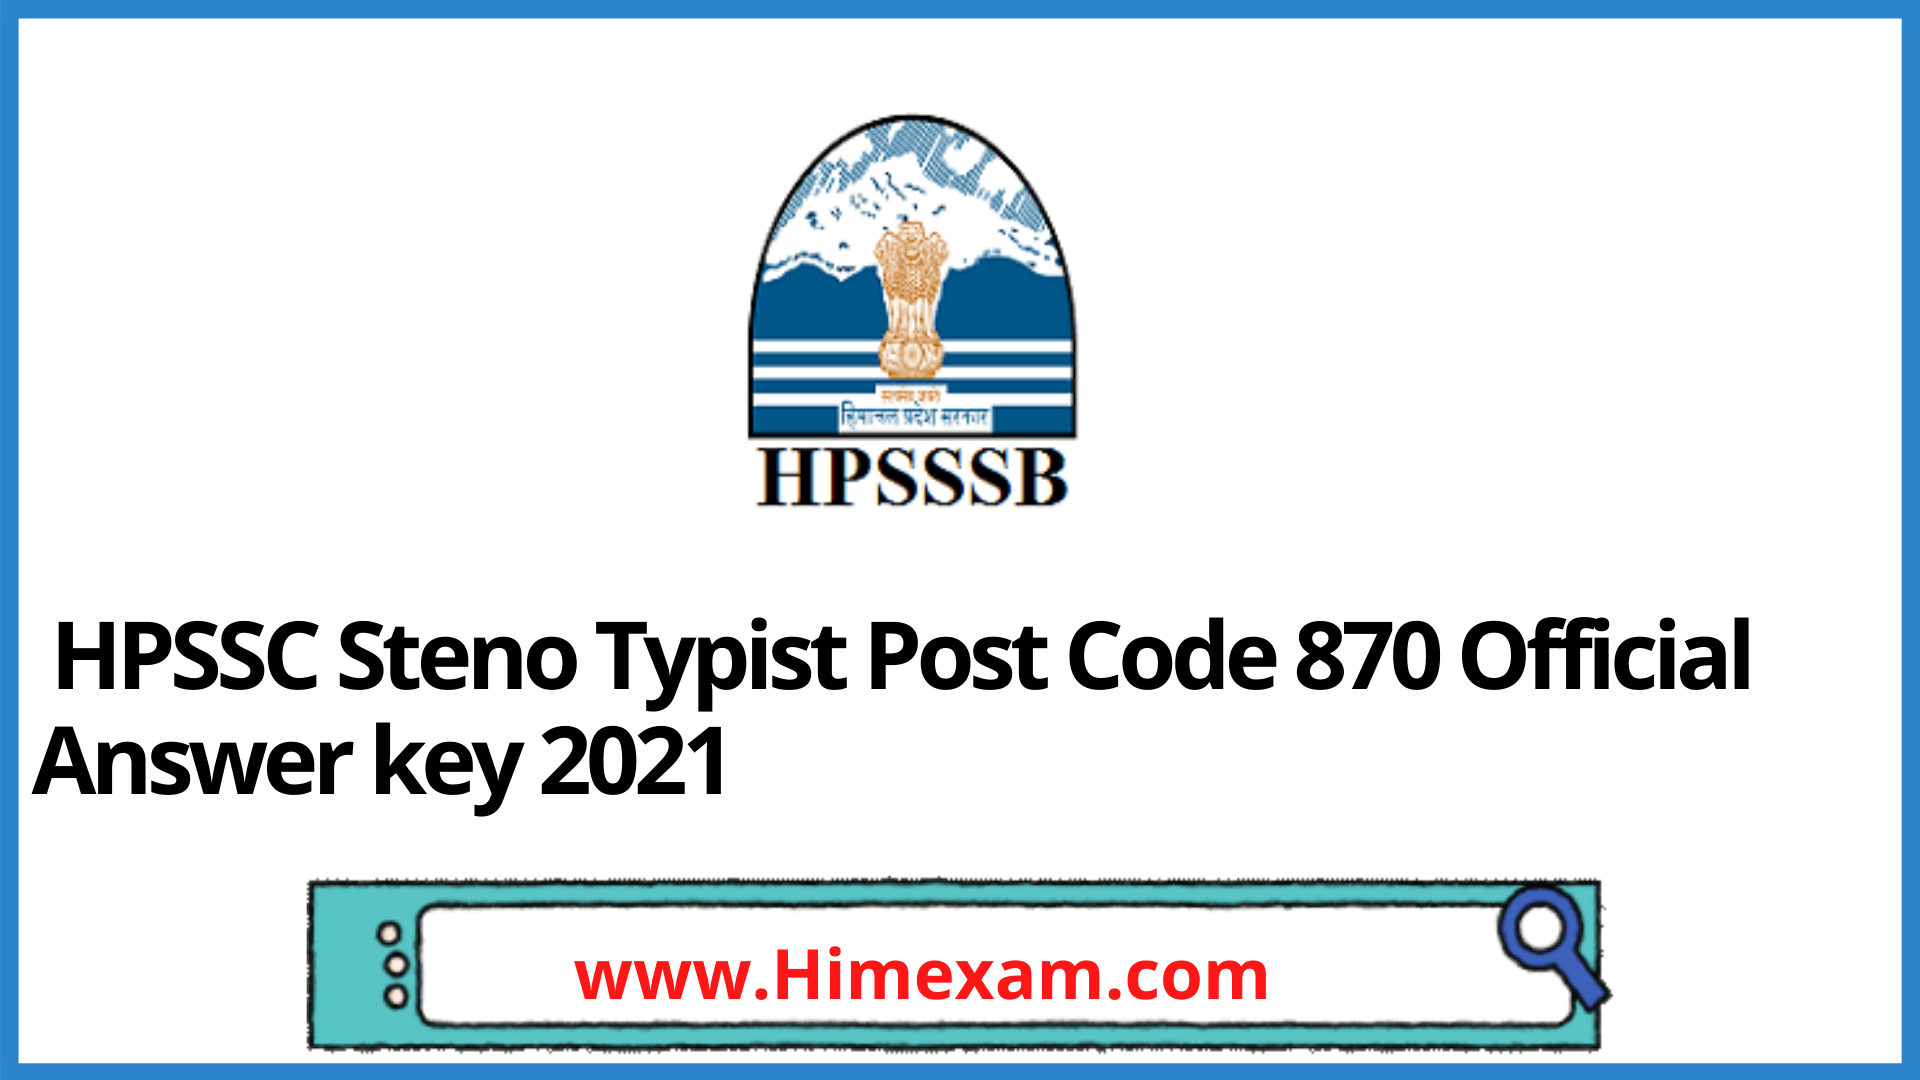 HPSSC Steno Typist Post Code 870 Official Answer key 2021